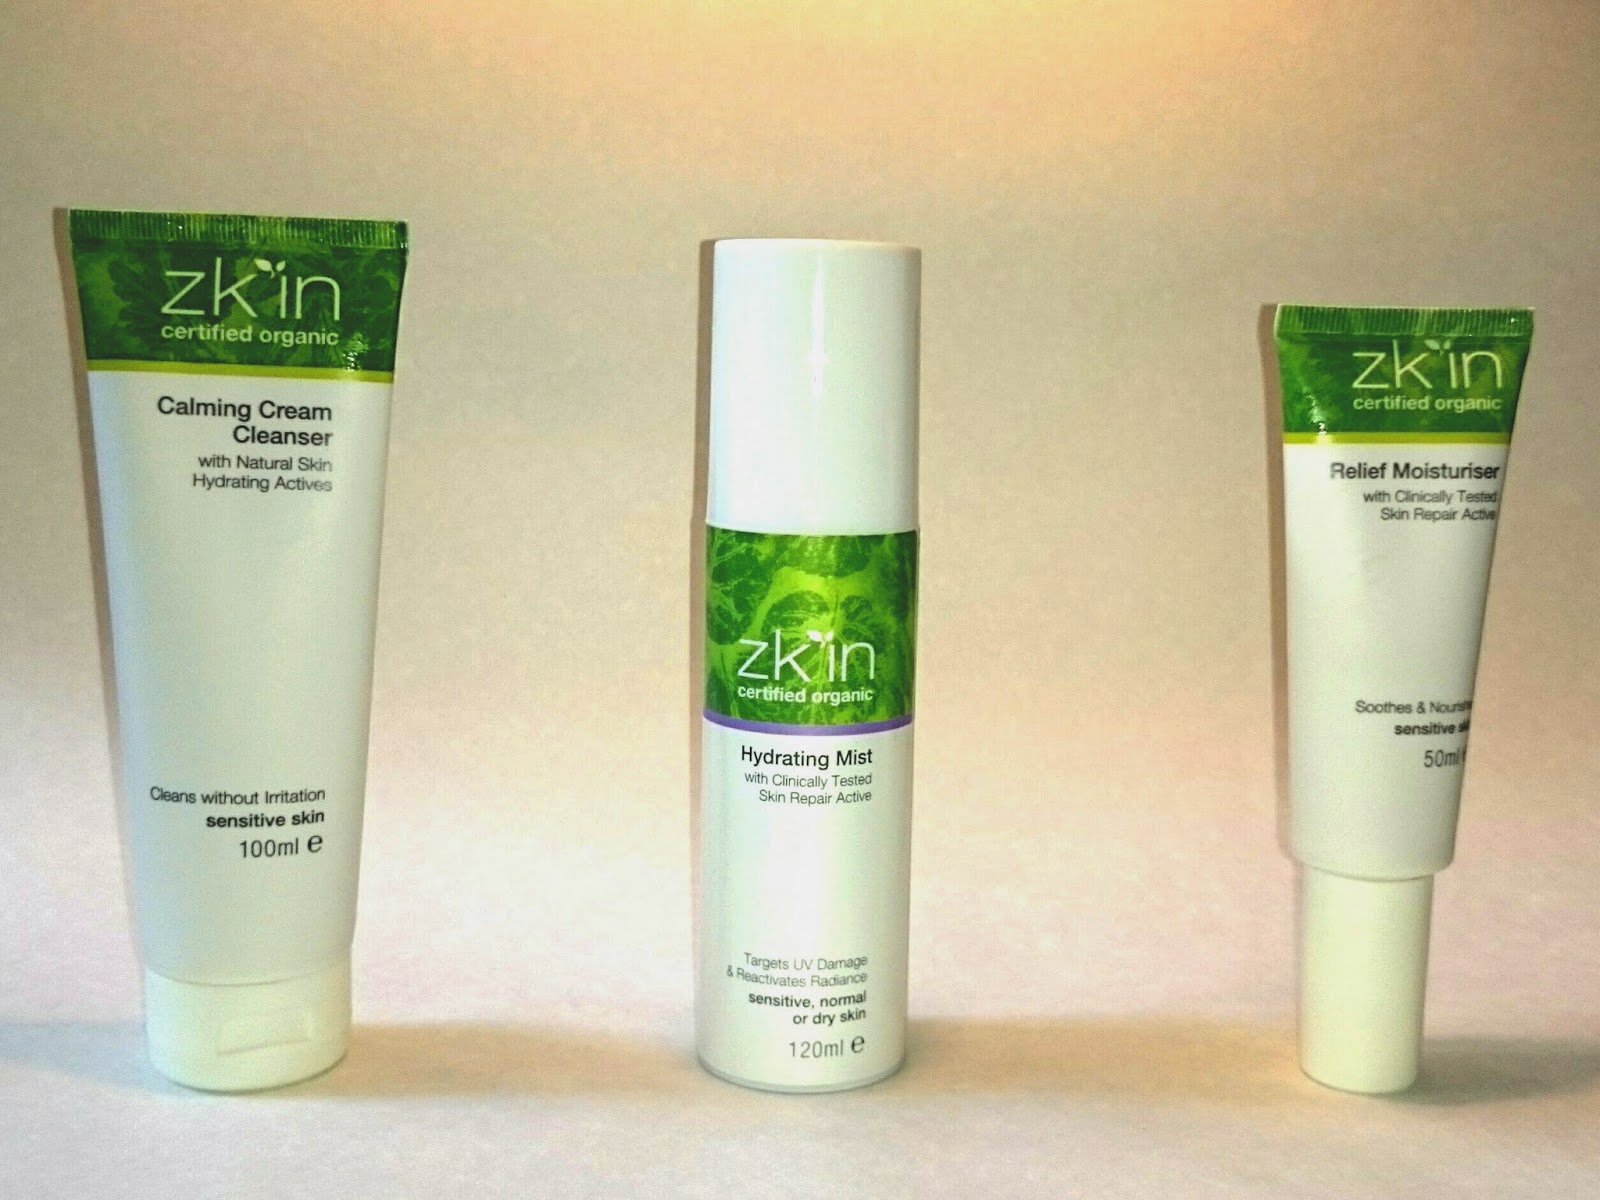 zk'in Calming Cream Cleanser, Hydrating Mist and Relief Moisturiser, unboxed